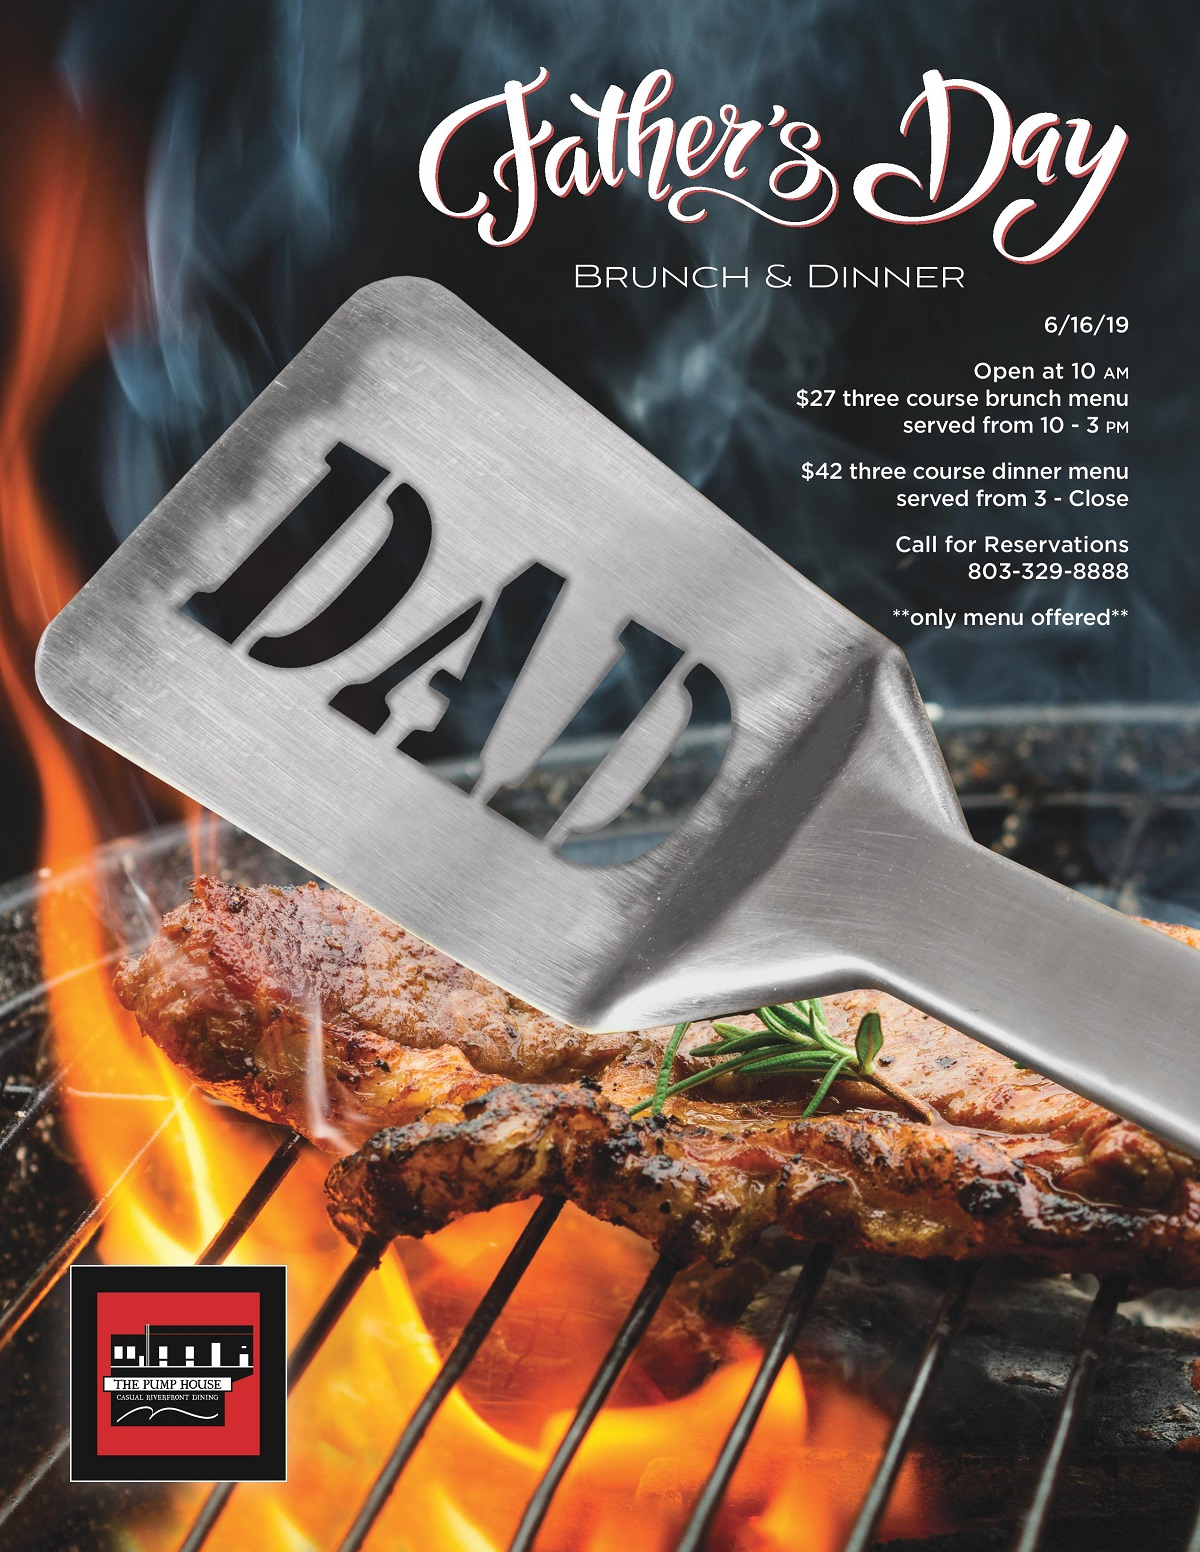 FathersDay_BrunchEvent_WebGraphic_FIN-page-001 (1).jpg